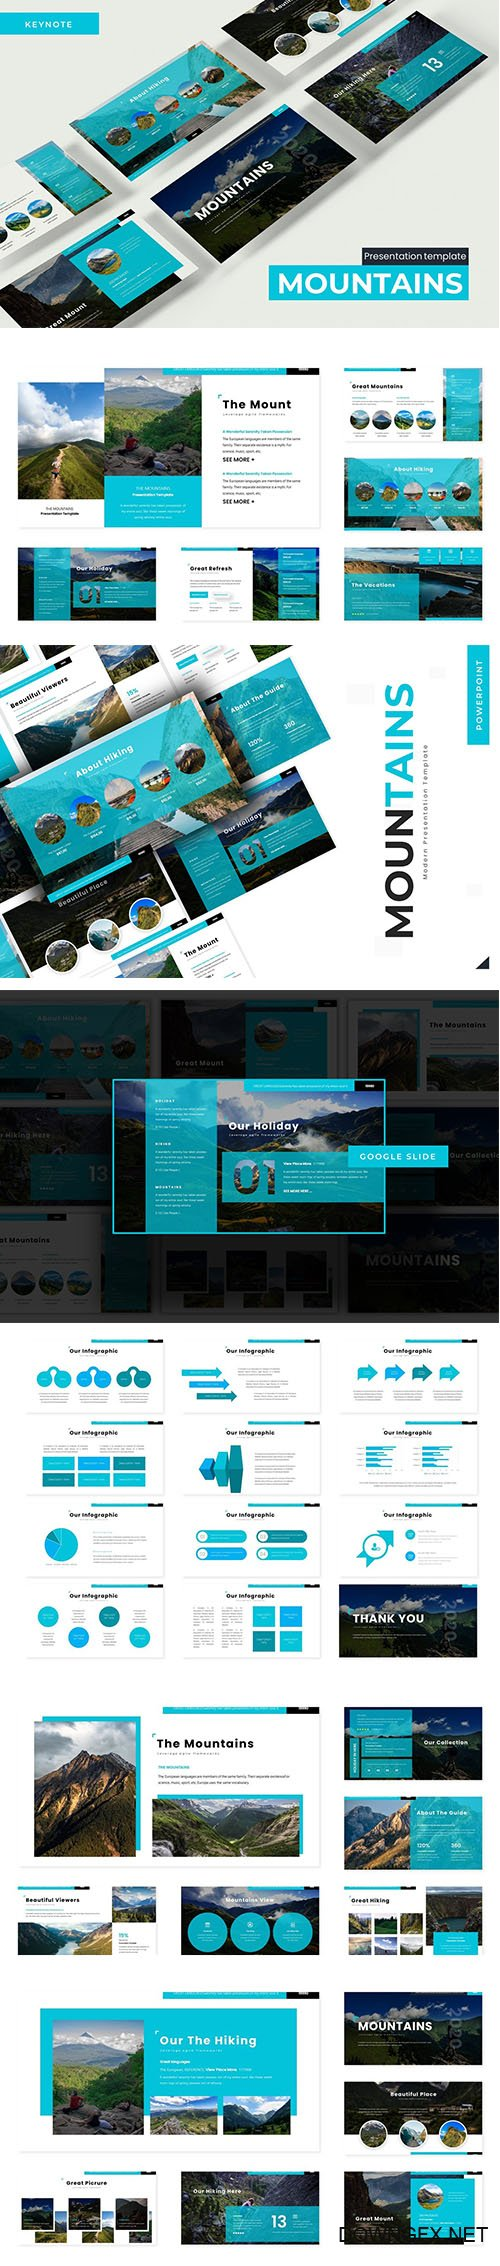 Mountains - Powerpoint Template, Keynote and Google Slide Template